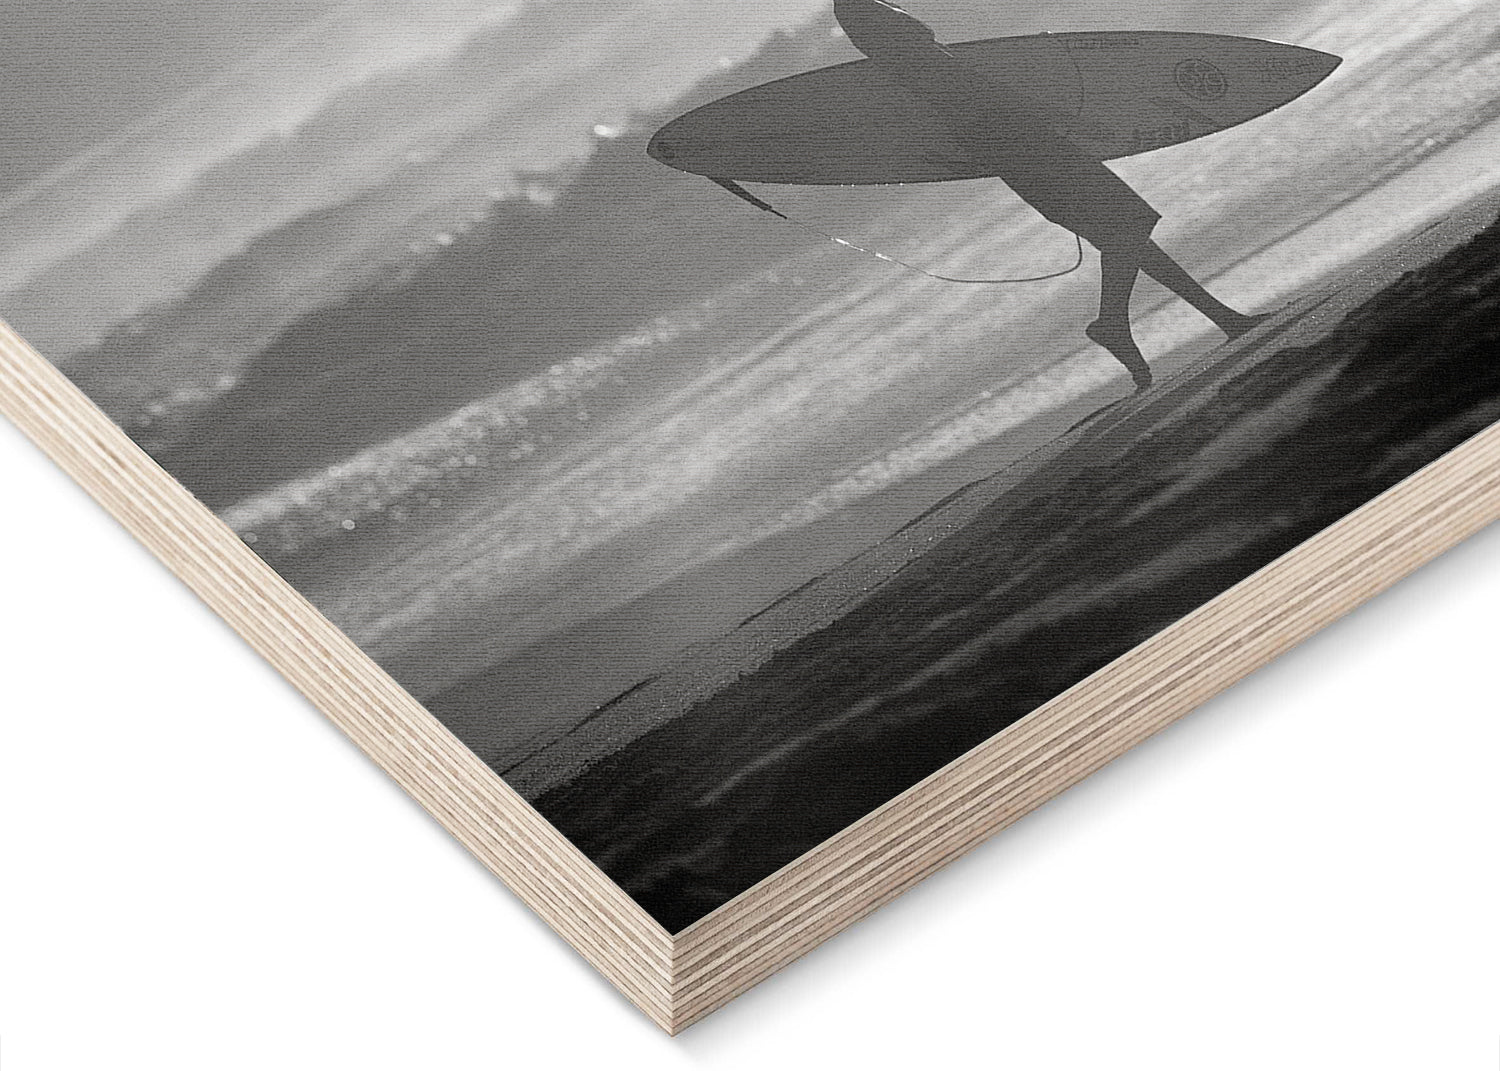 Surfer walking on beach holding surfboard black and white at Off The Wall on the North Shore of Oahu in Hawaii wood print